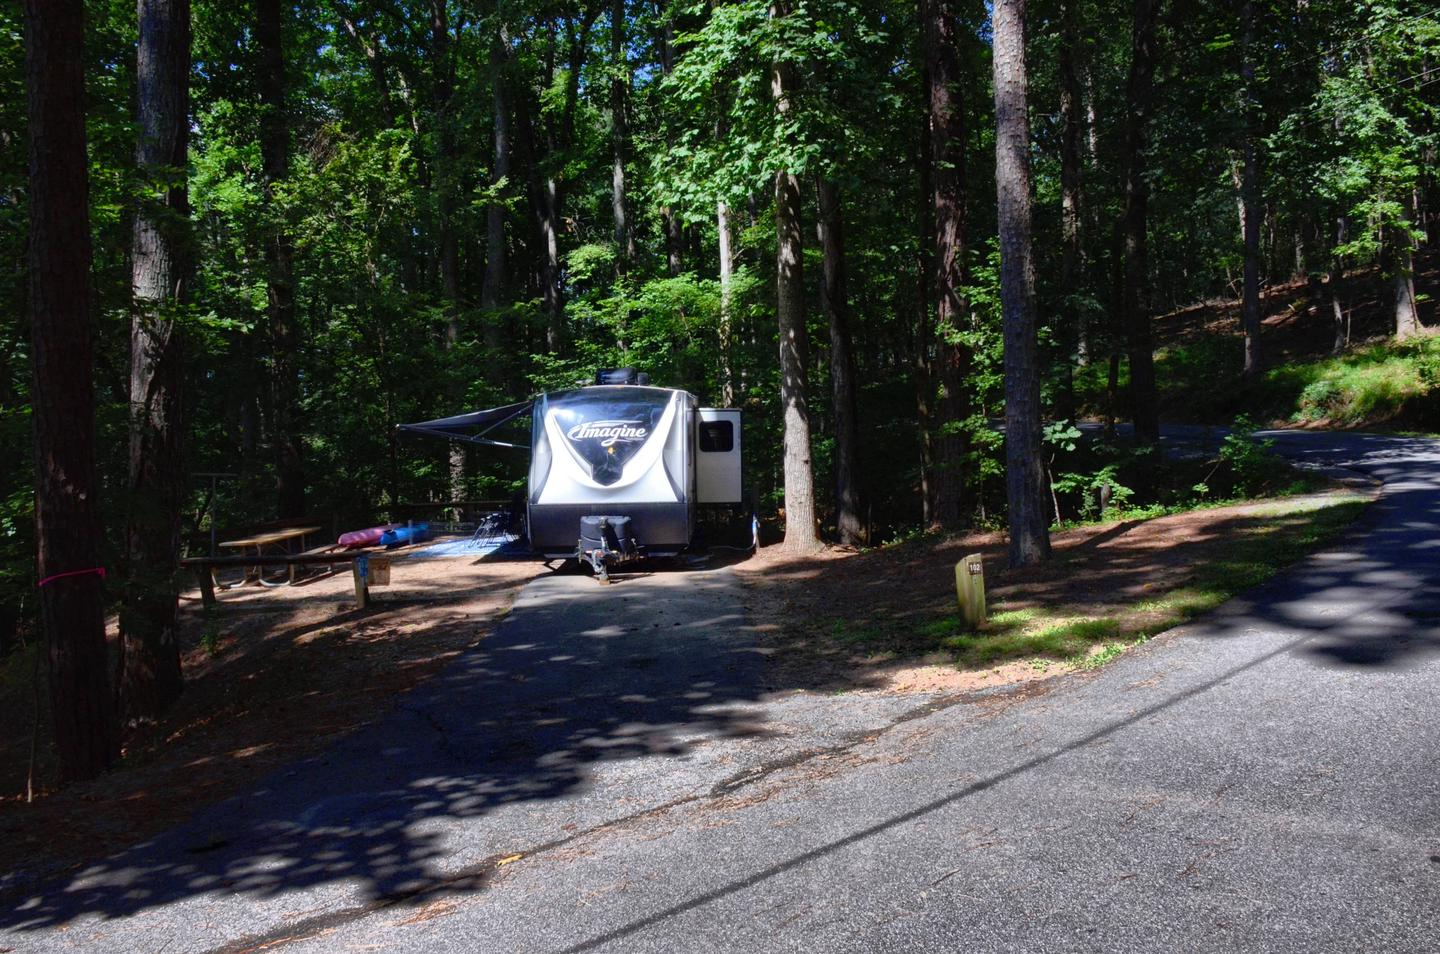 Driveway slope, awning-side clearance.McKinney Campground, campsite 102.